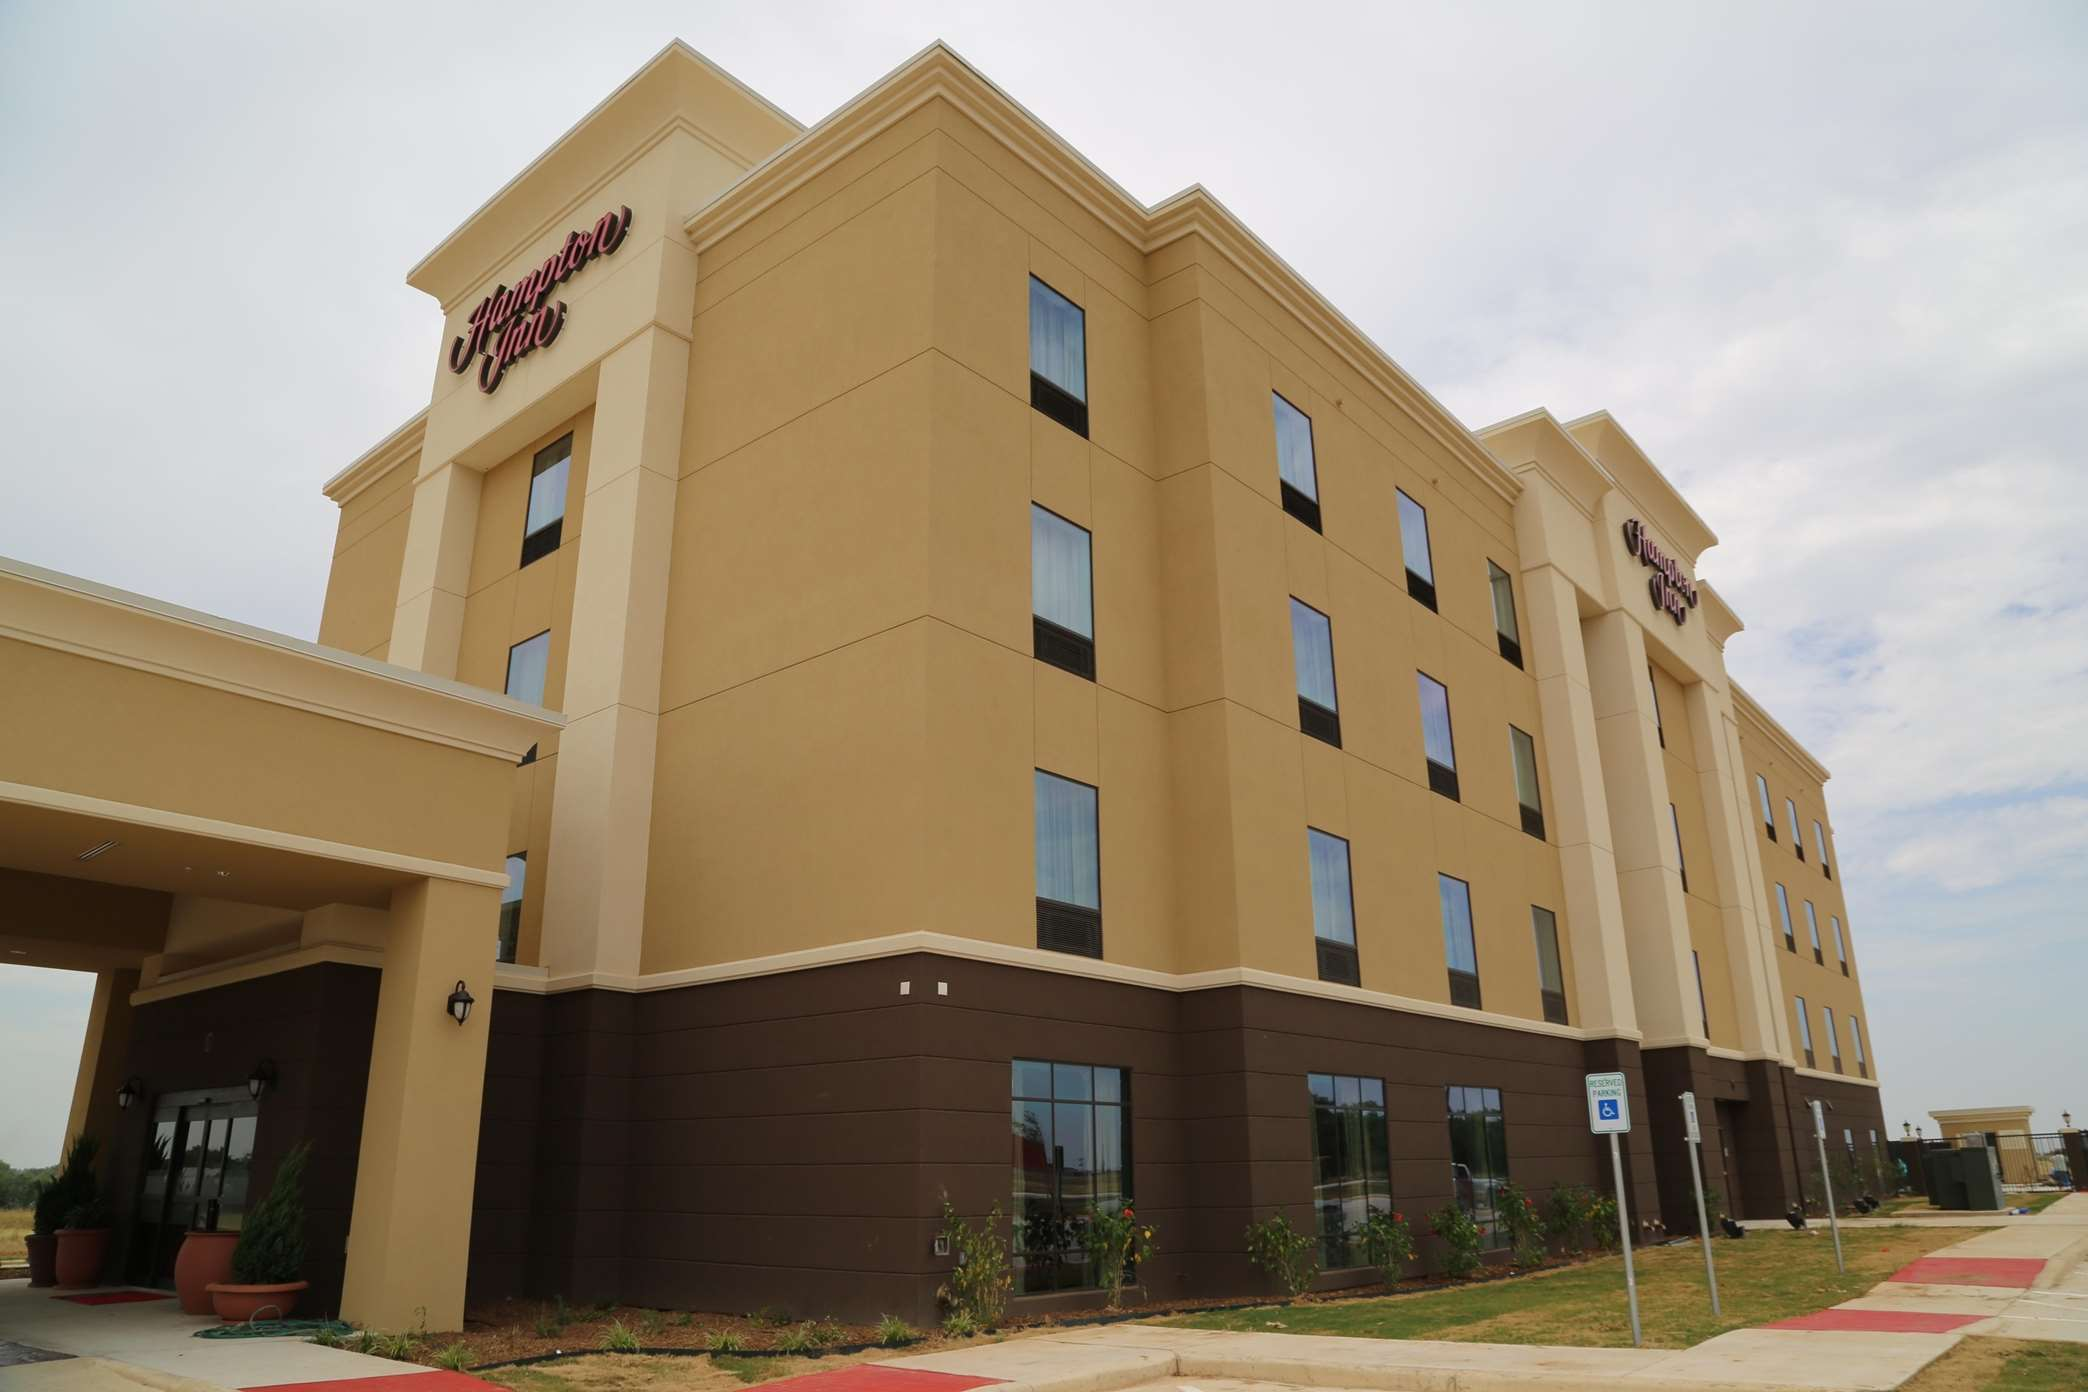 Hampton inn coupon codes